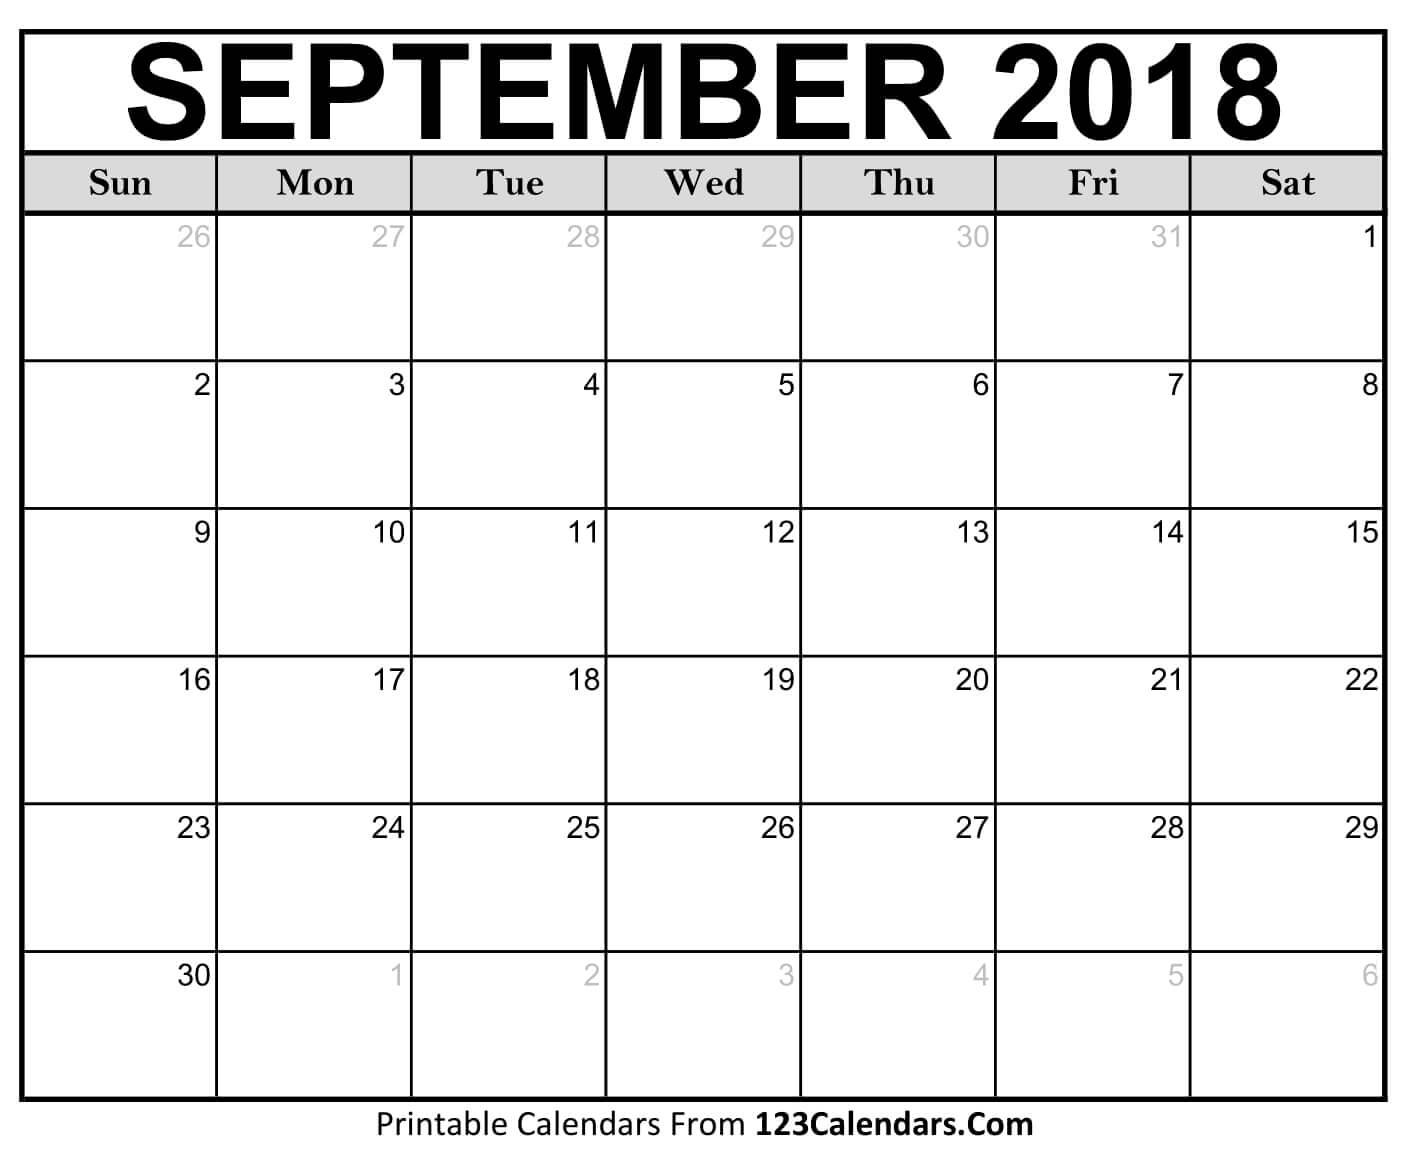 Printable September 2018 Calendar Templates – 123Calendars Calendar 2019 Sept